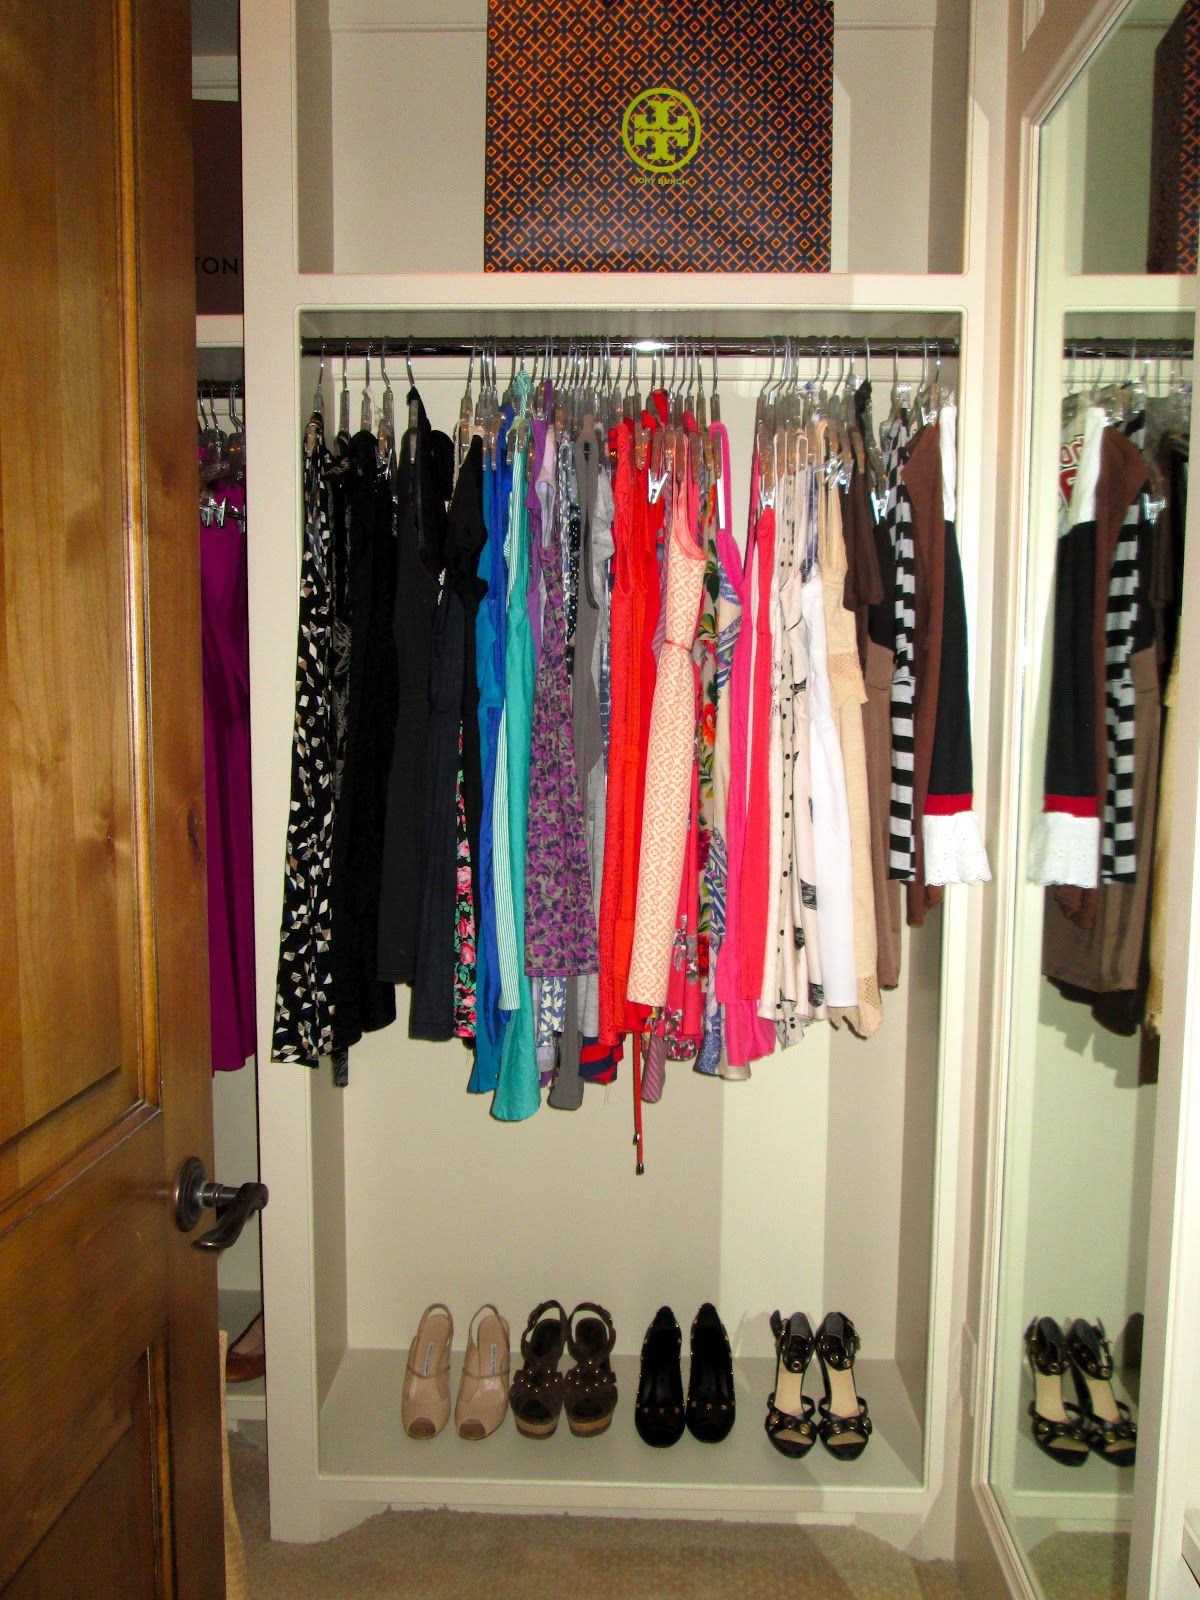 Complete Interesting Small Closet Organization Ideas with High Floor Mirror and White Shelves behind Wooden Door